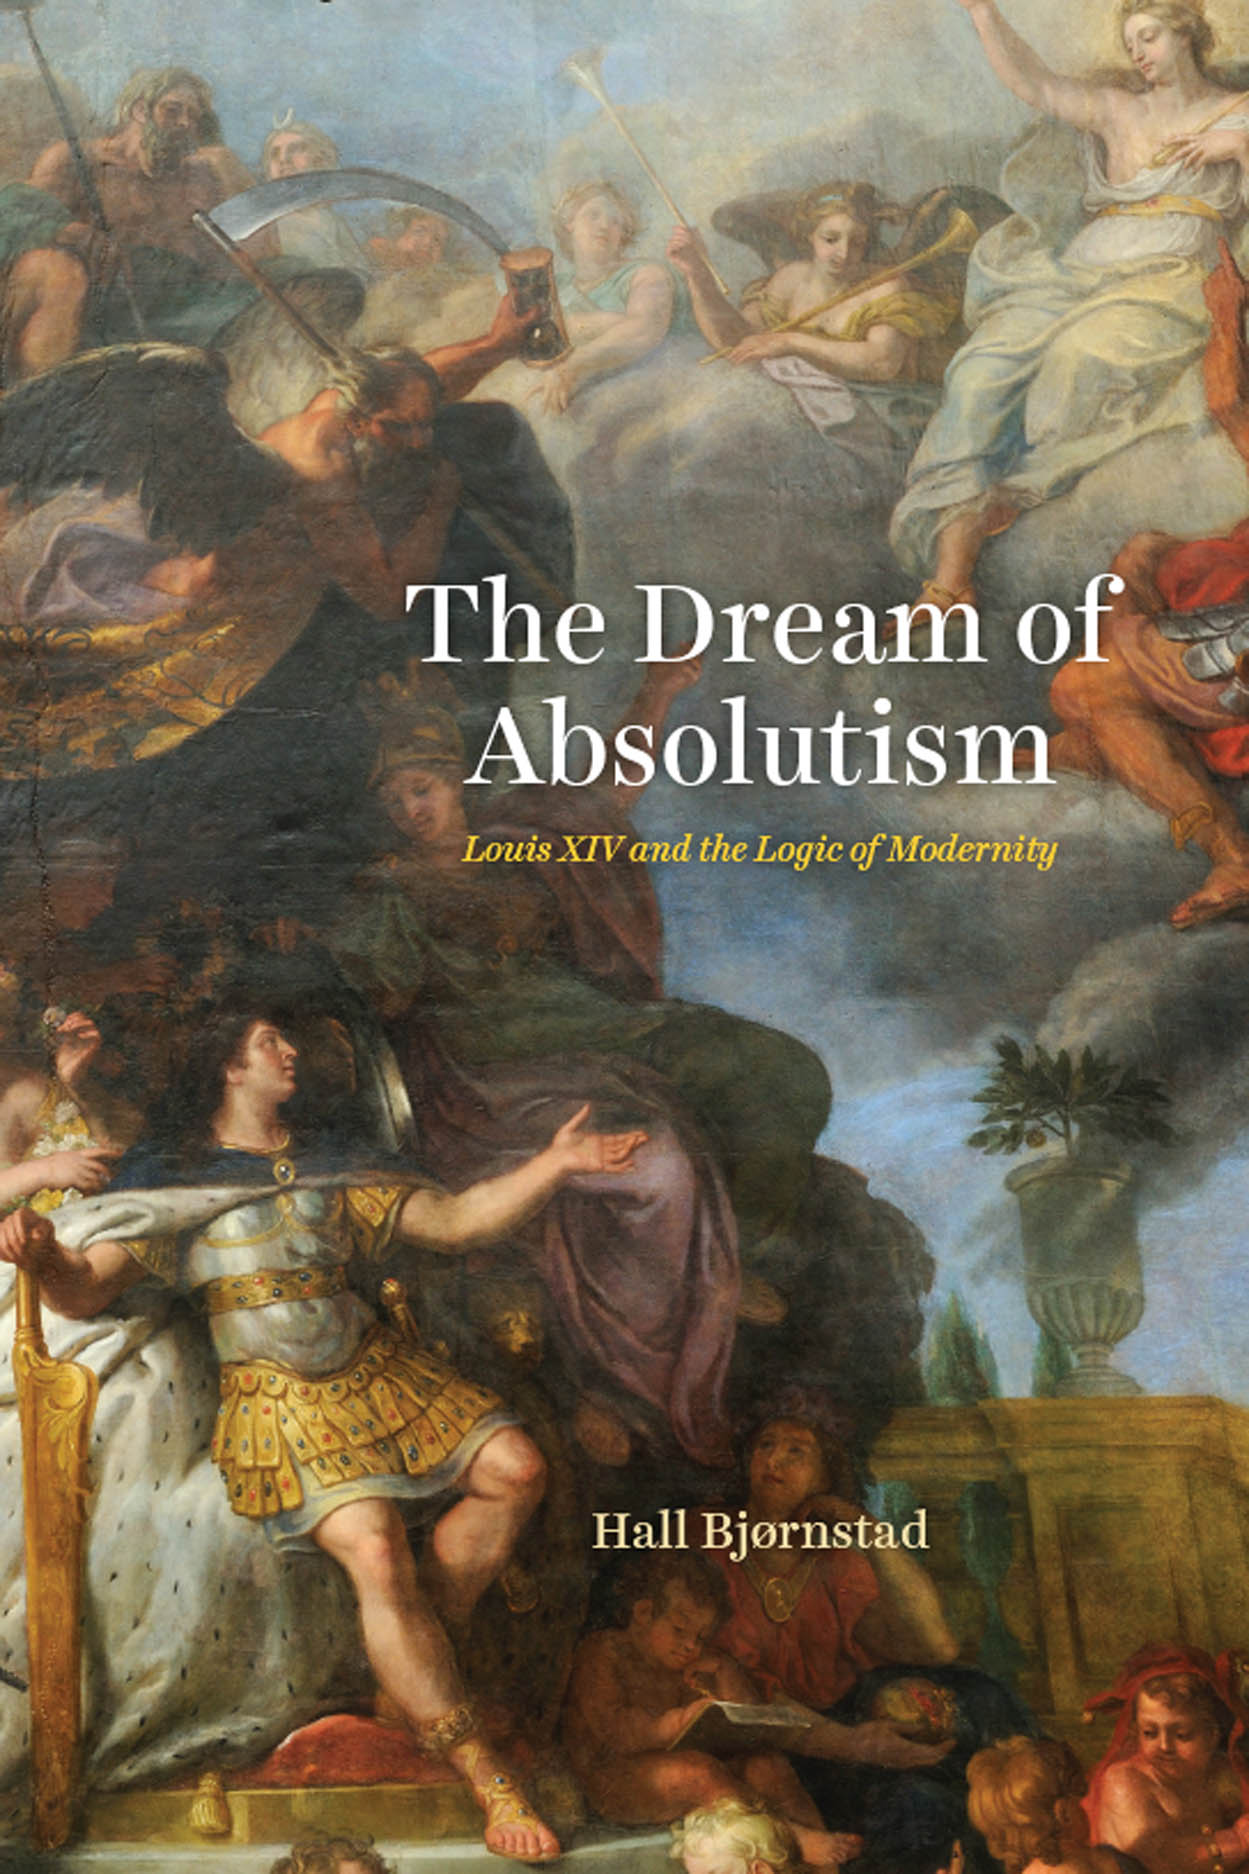 The Dream of Absolutism: Louis XIV and the Logic of Modernity